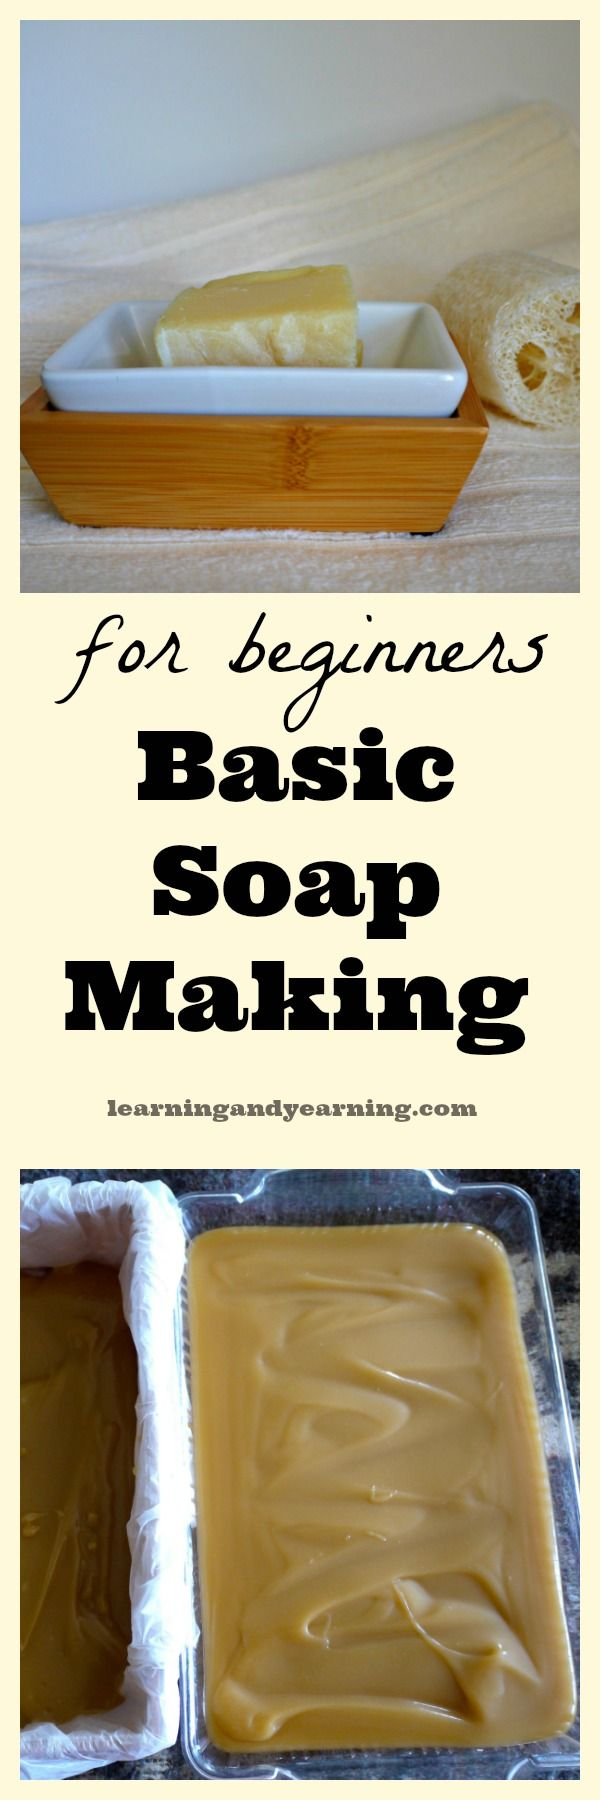 Soap making requires care, but is a simple and straight-forward process. This post on basic soap making is a simple primer to get you started.